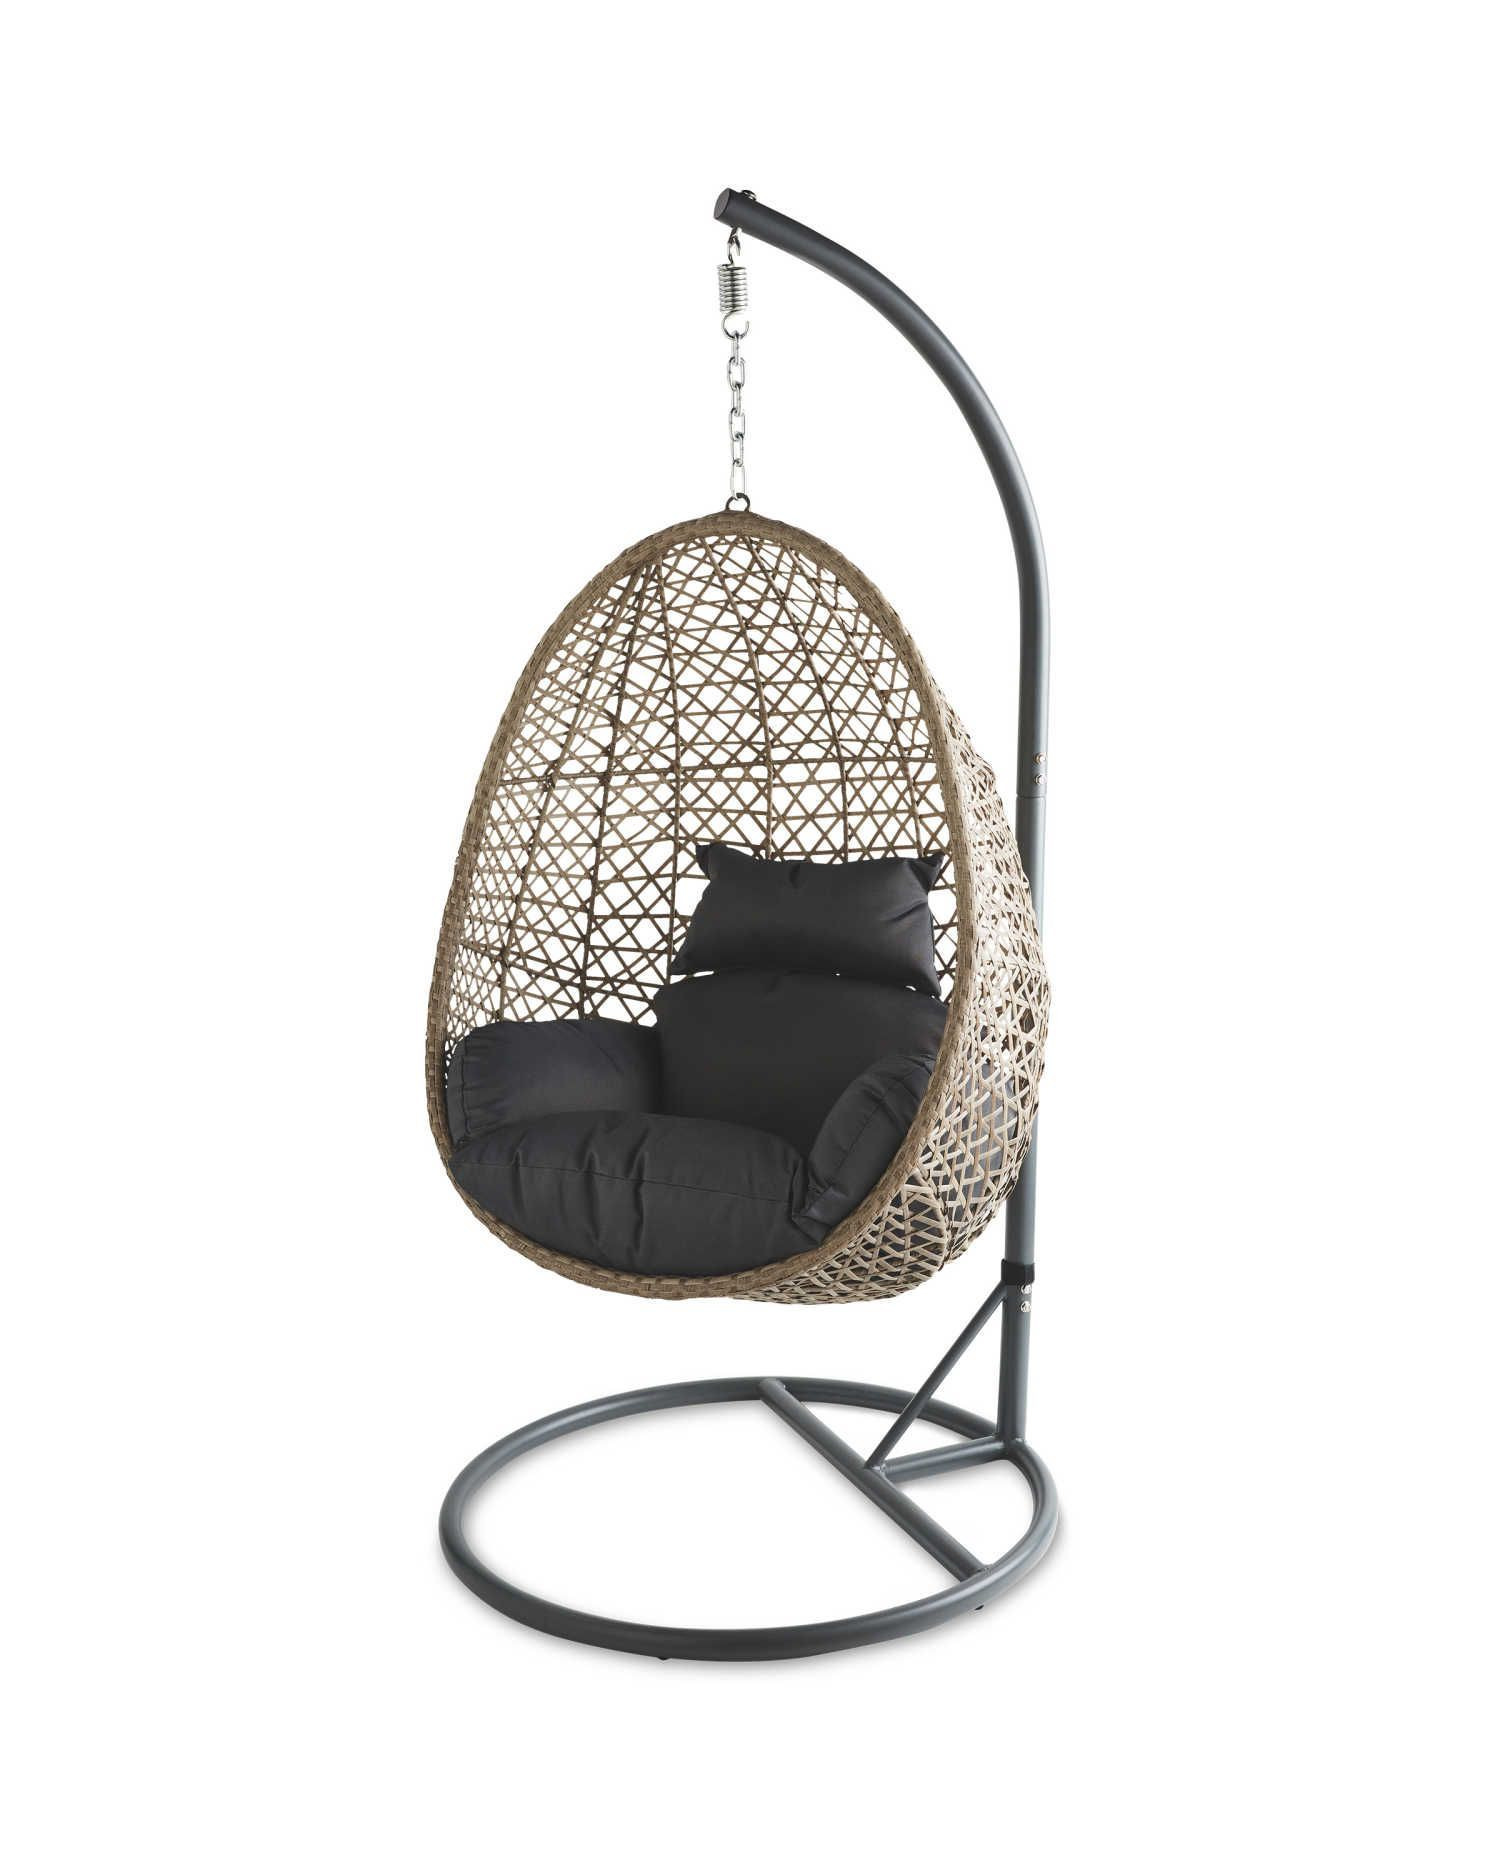 hanging egg chair a crop=1xw 1xh center top